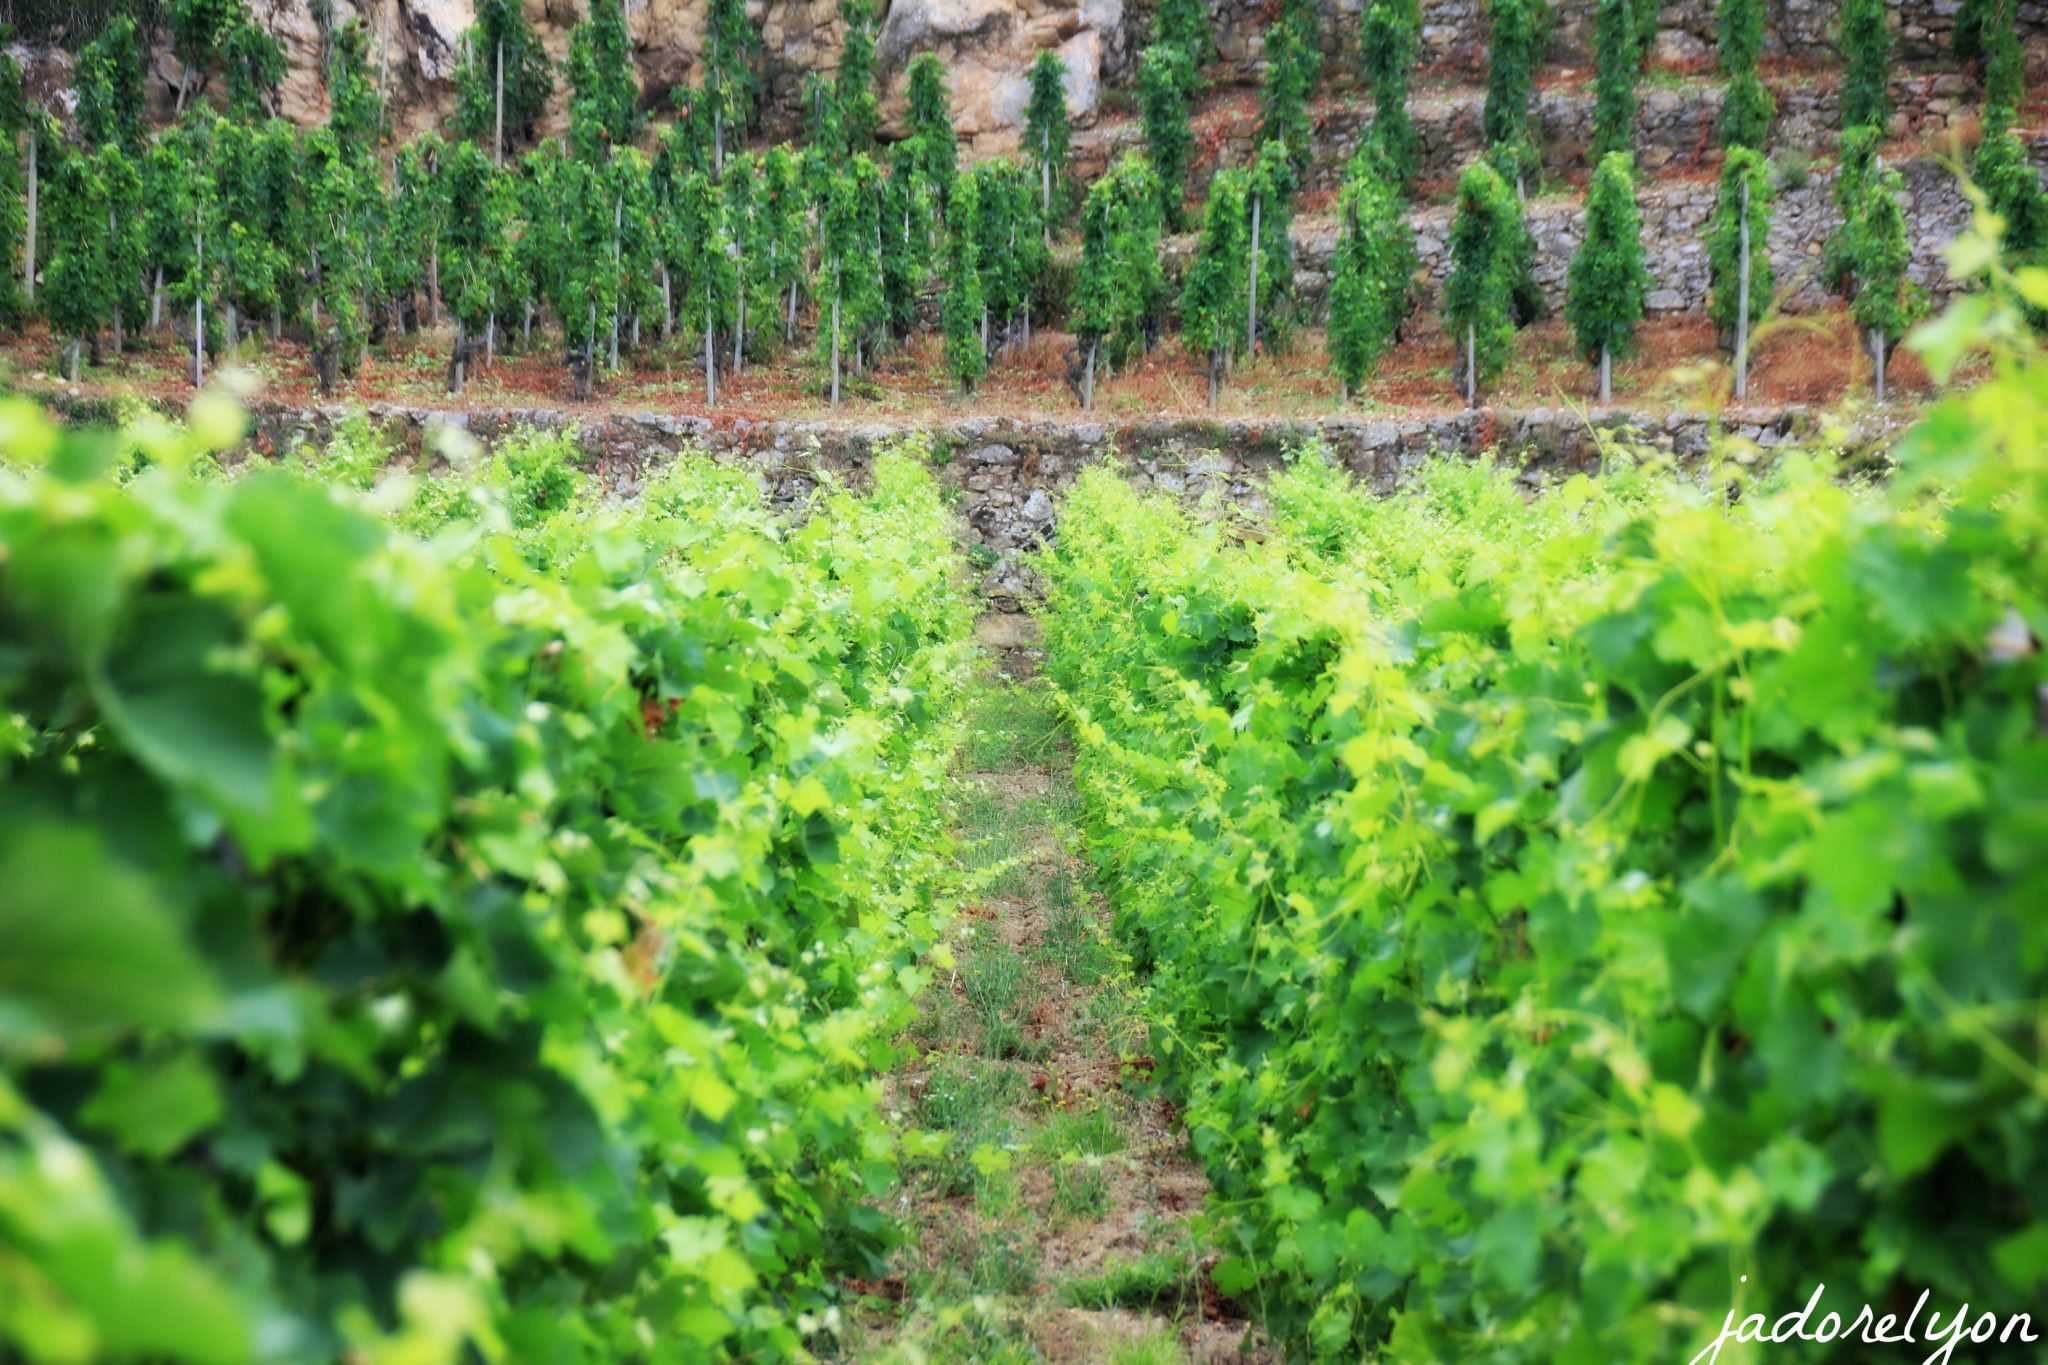 Start by getting the feel of vineyards.